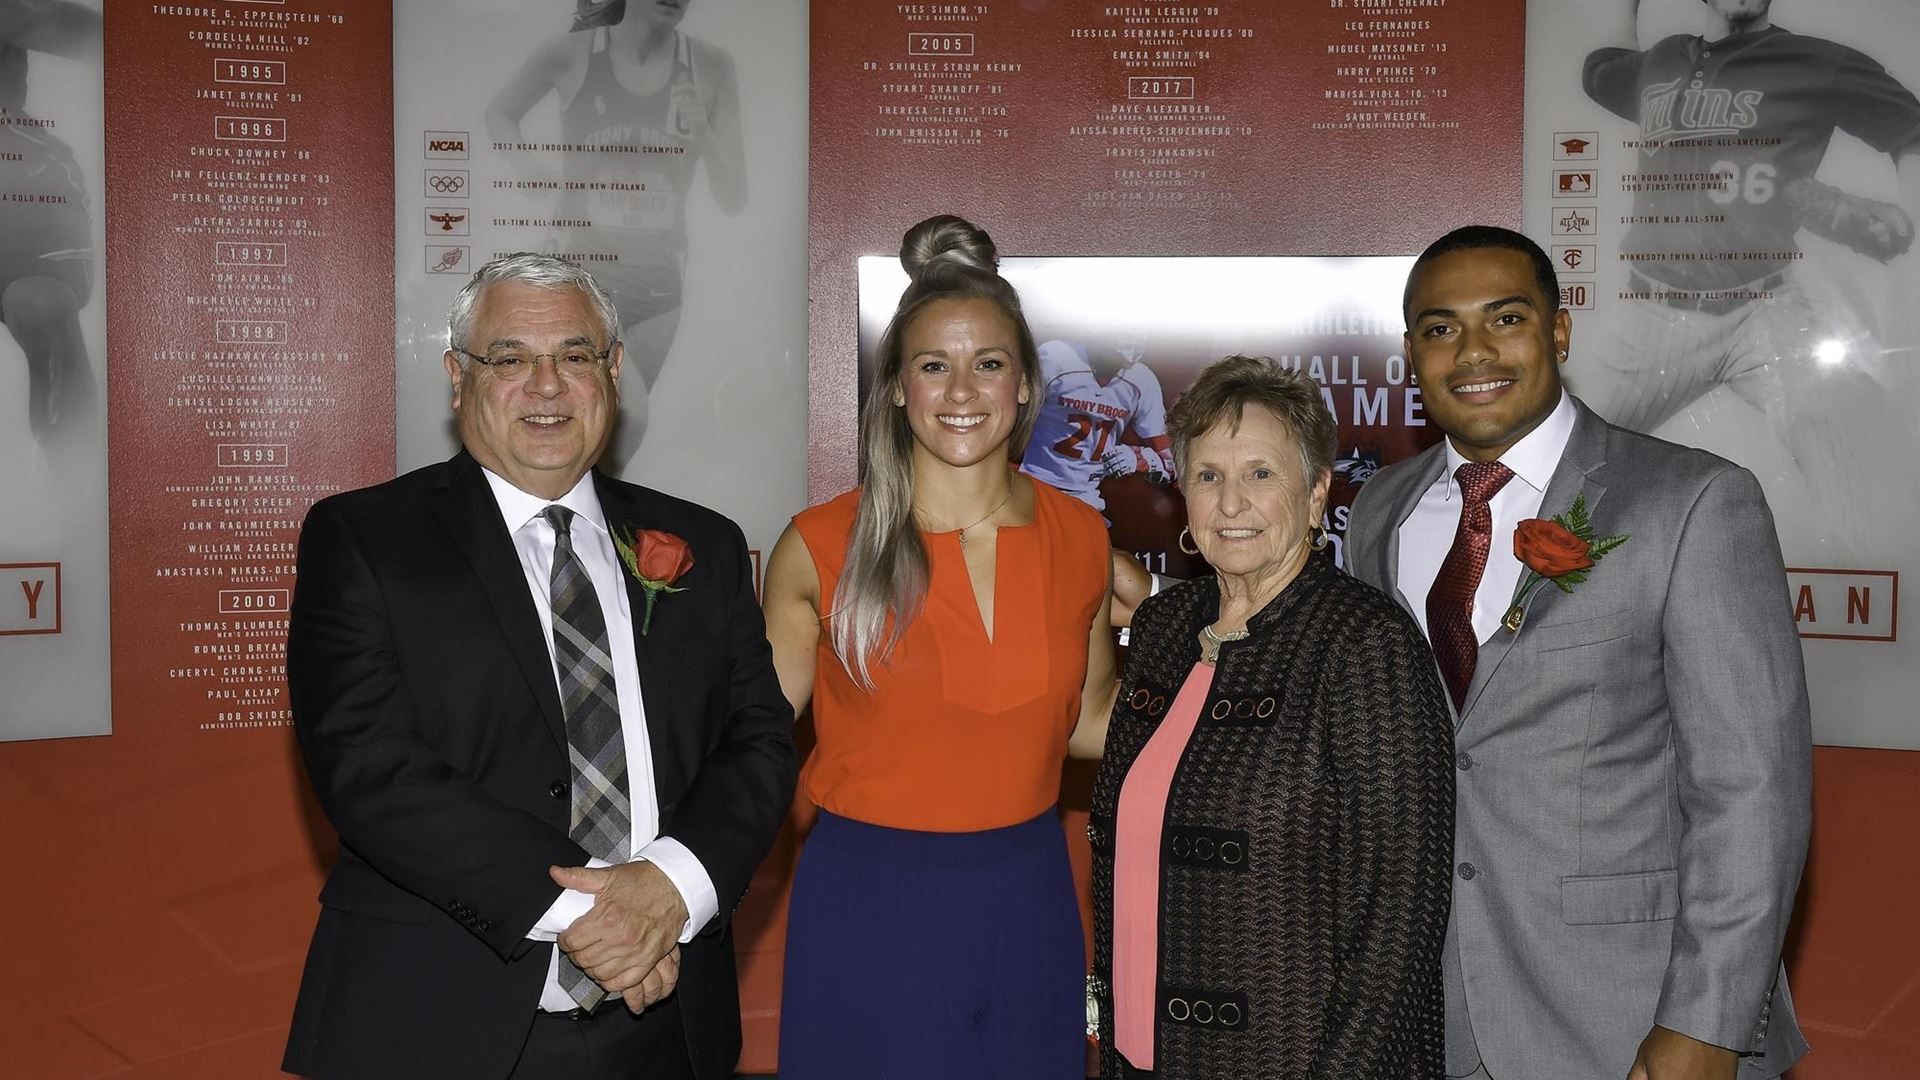 2019 Stony Brook Athletics Hall of Fame